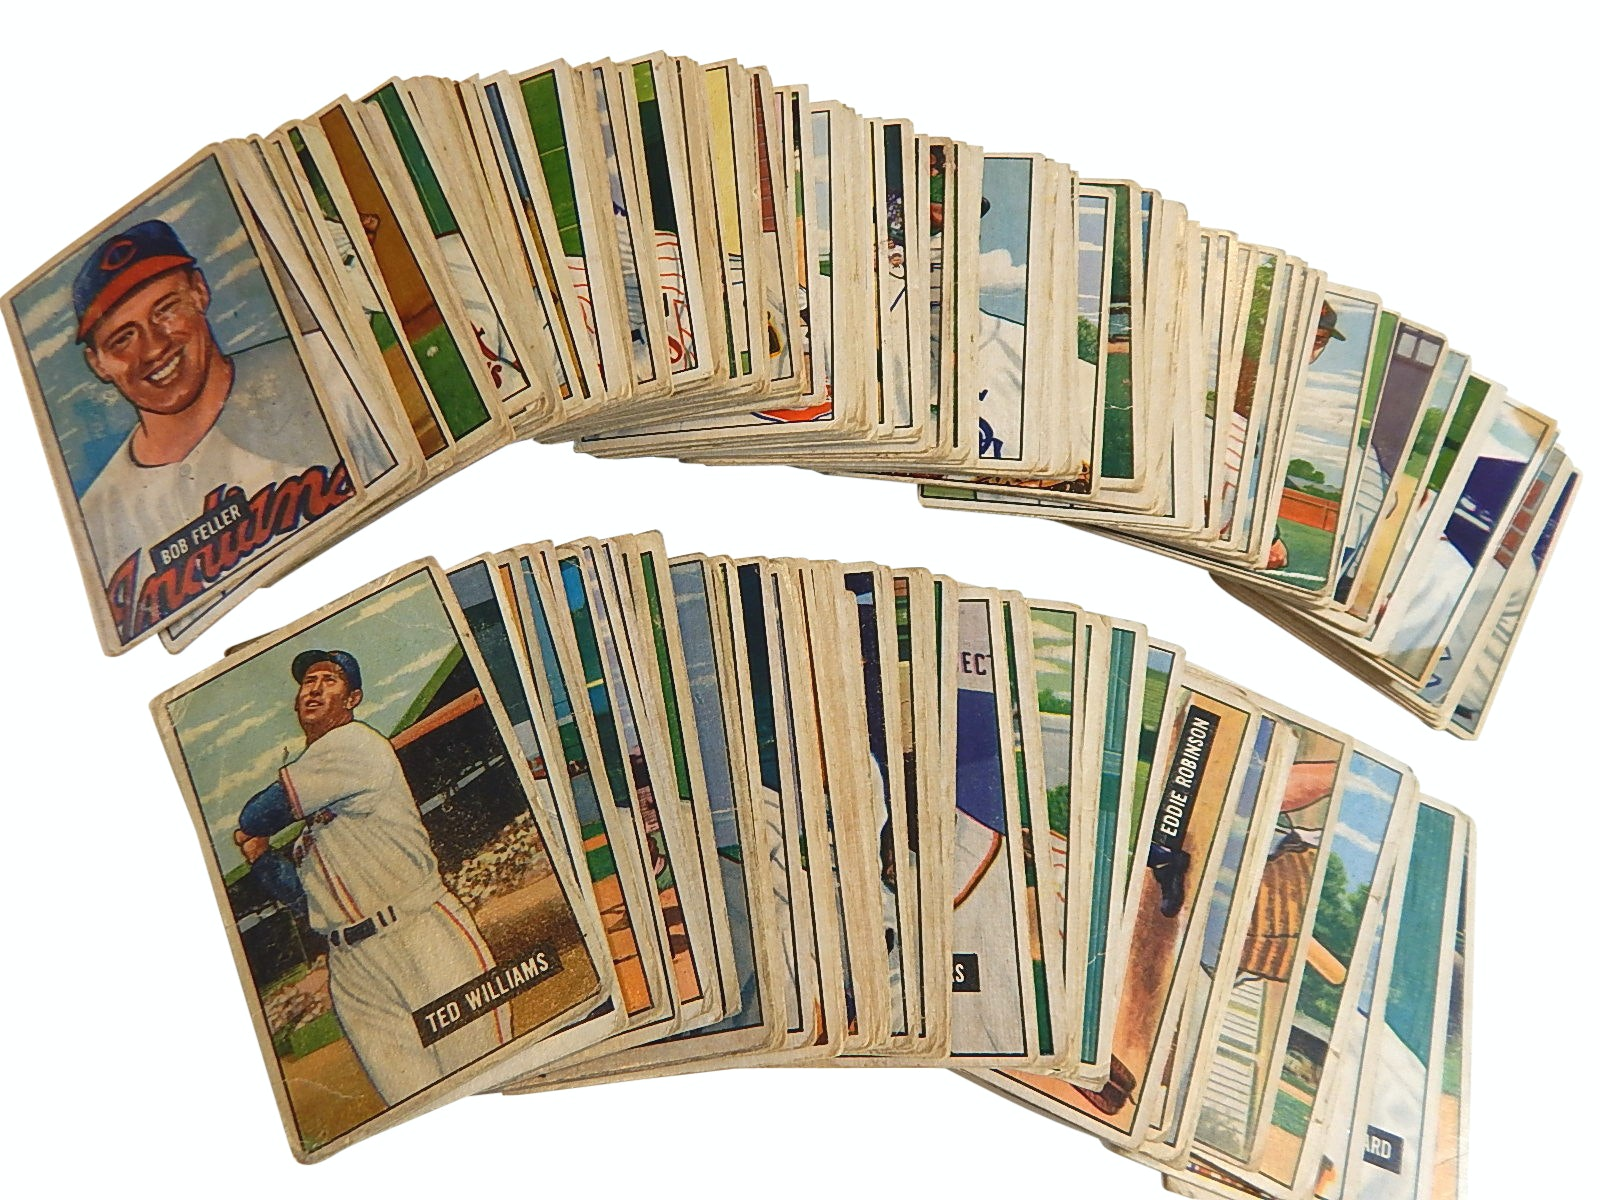 1951 Bowman Baseball Card Partial Set with Ted Williams, Nellie Fox, Bob Feller